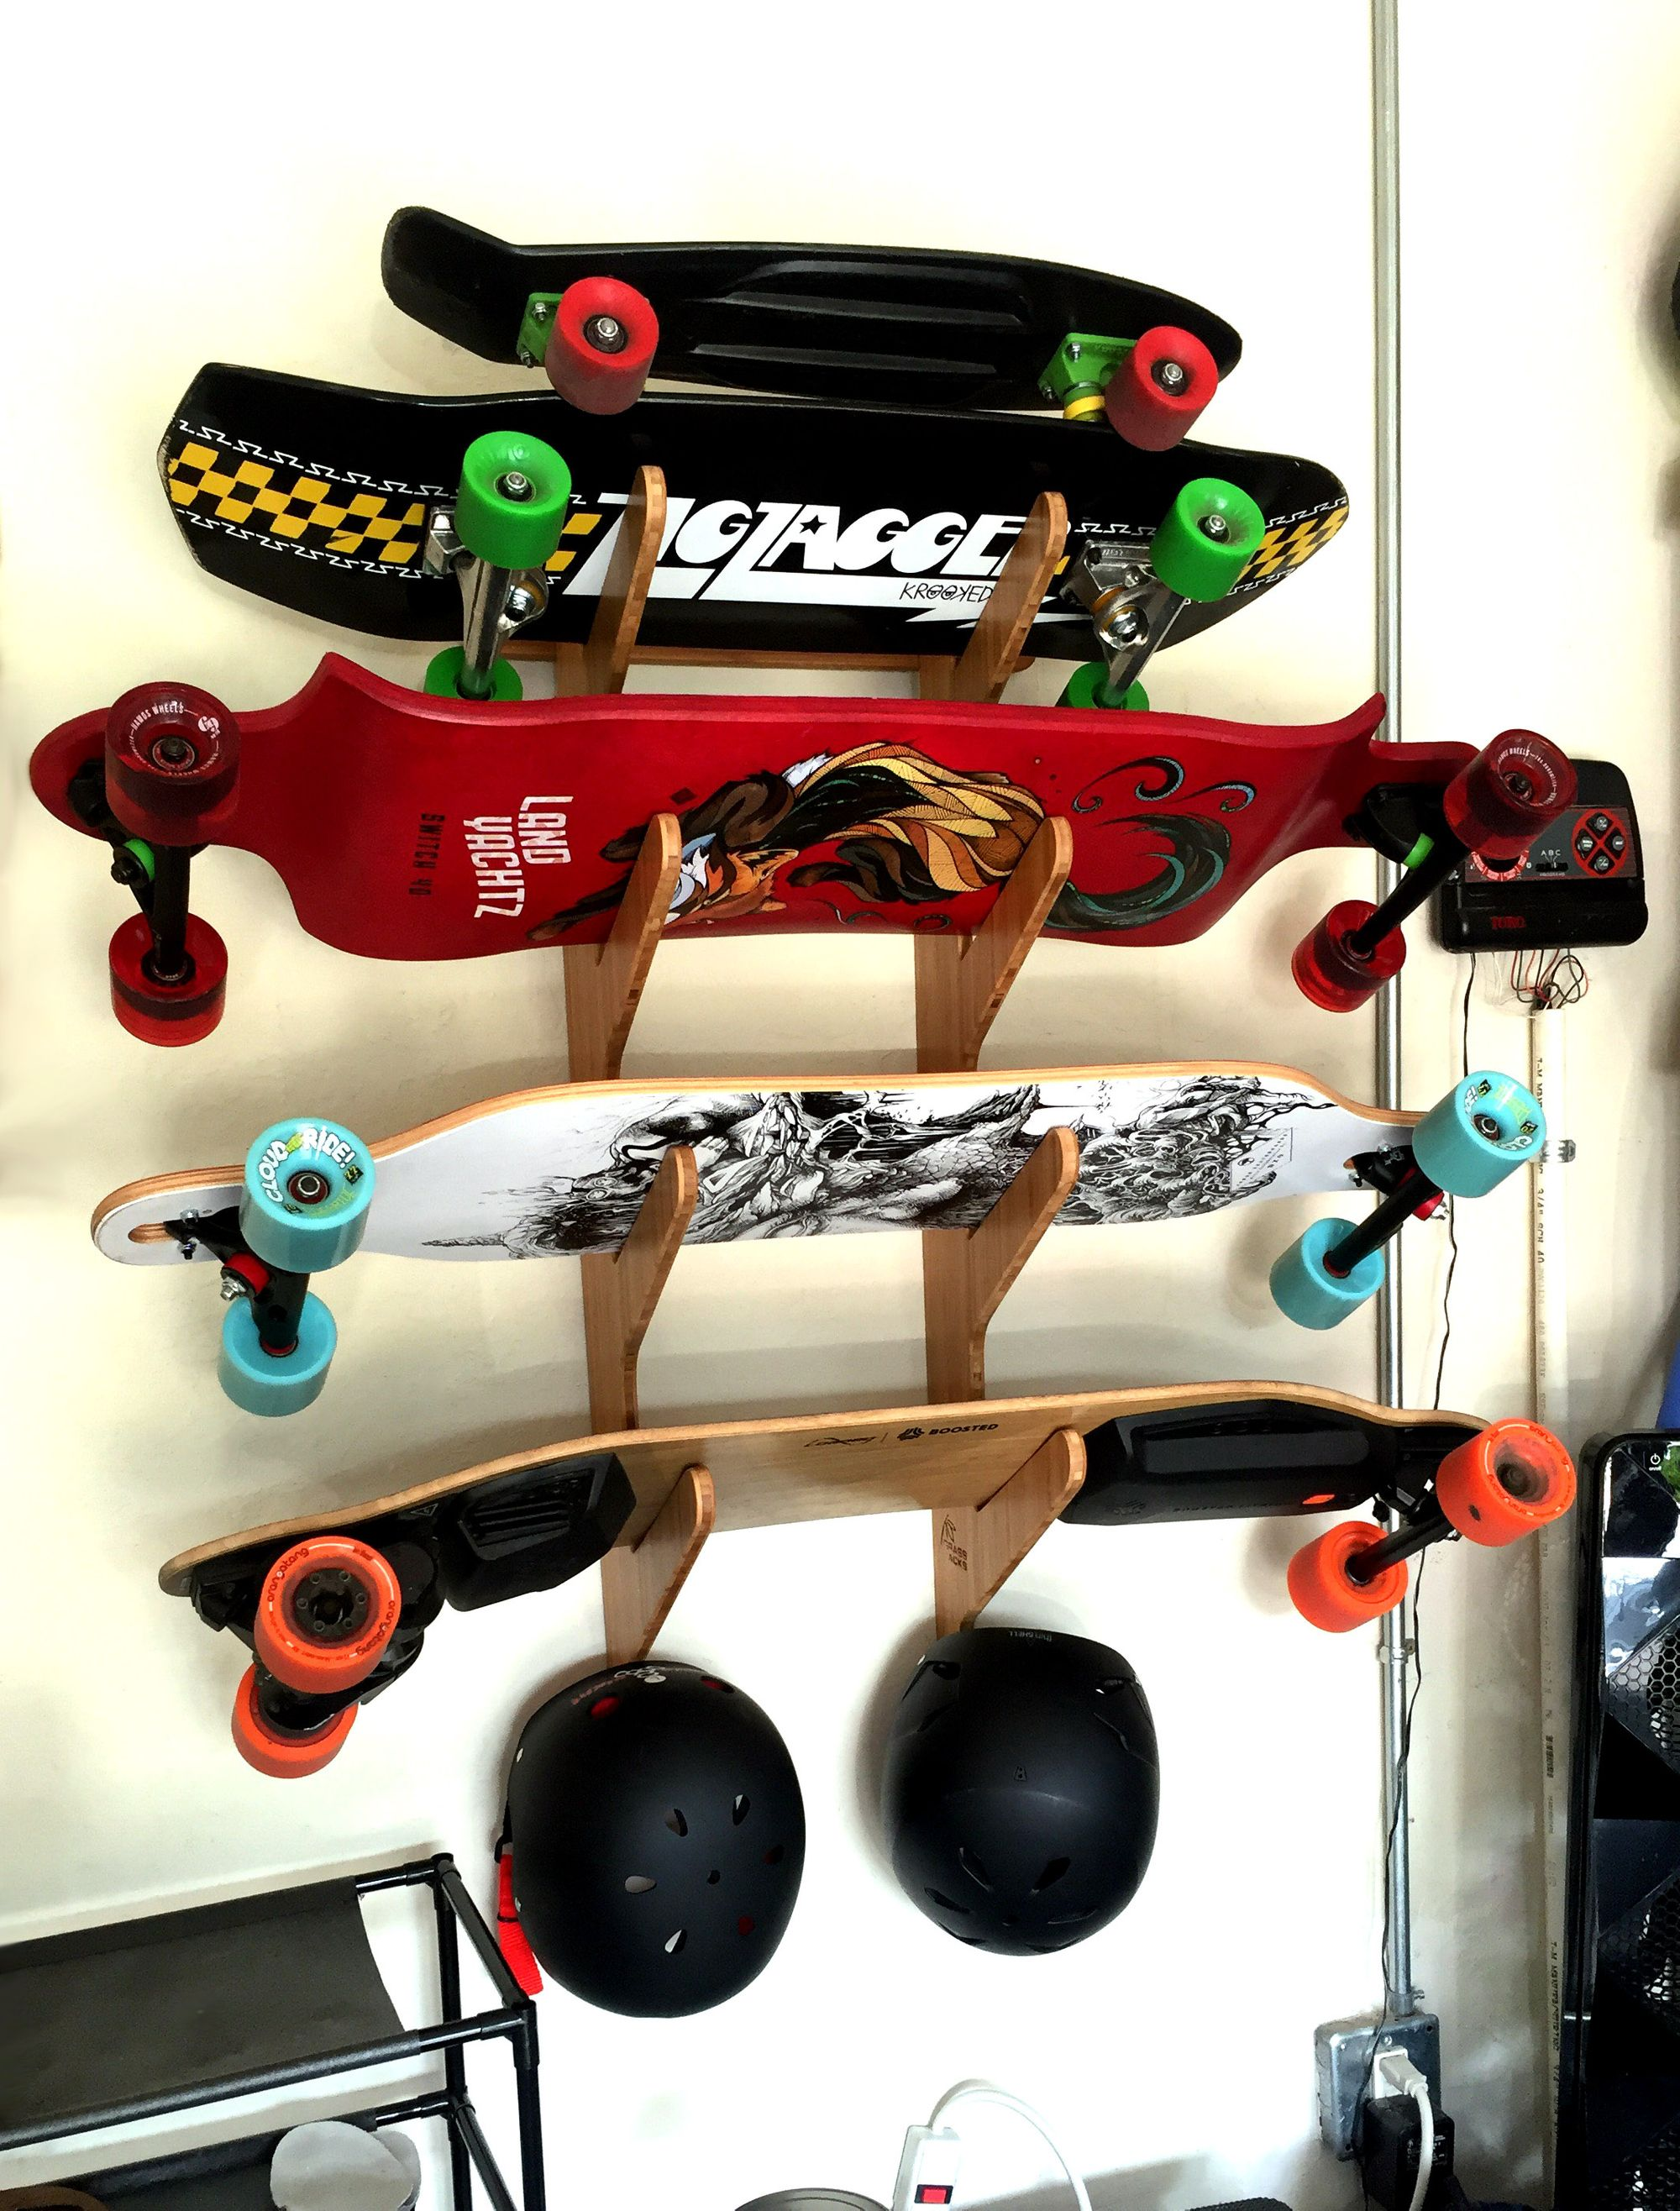 Put An End To The Unsightly Garage Board Pile And Organize Your Boards Helmets Etc With Our Moloka I Pro Skateb Snowboard Racks Skateboard Rack Board Rack